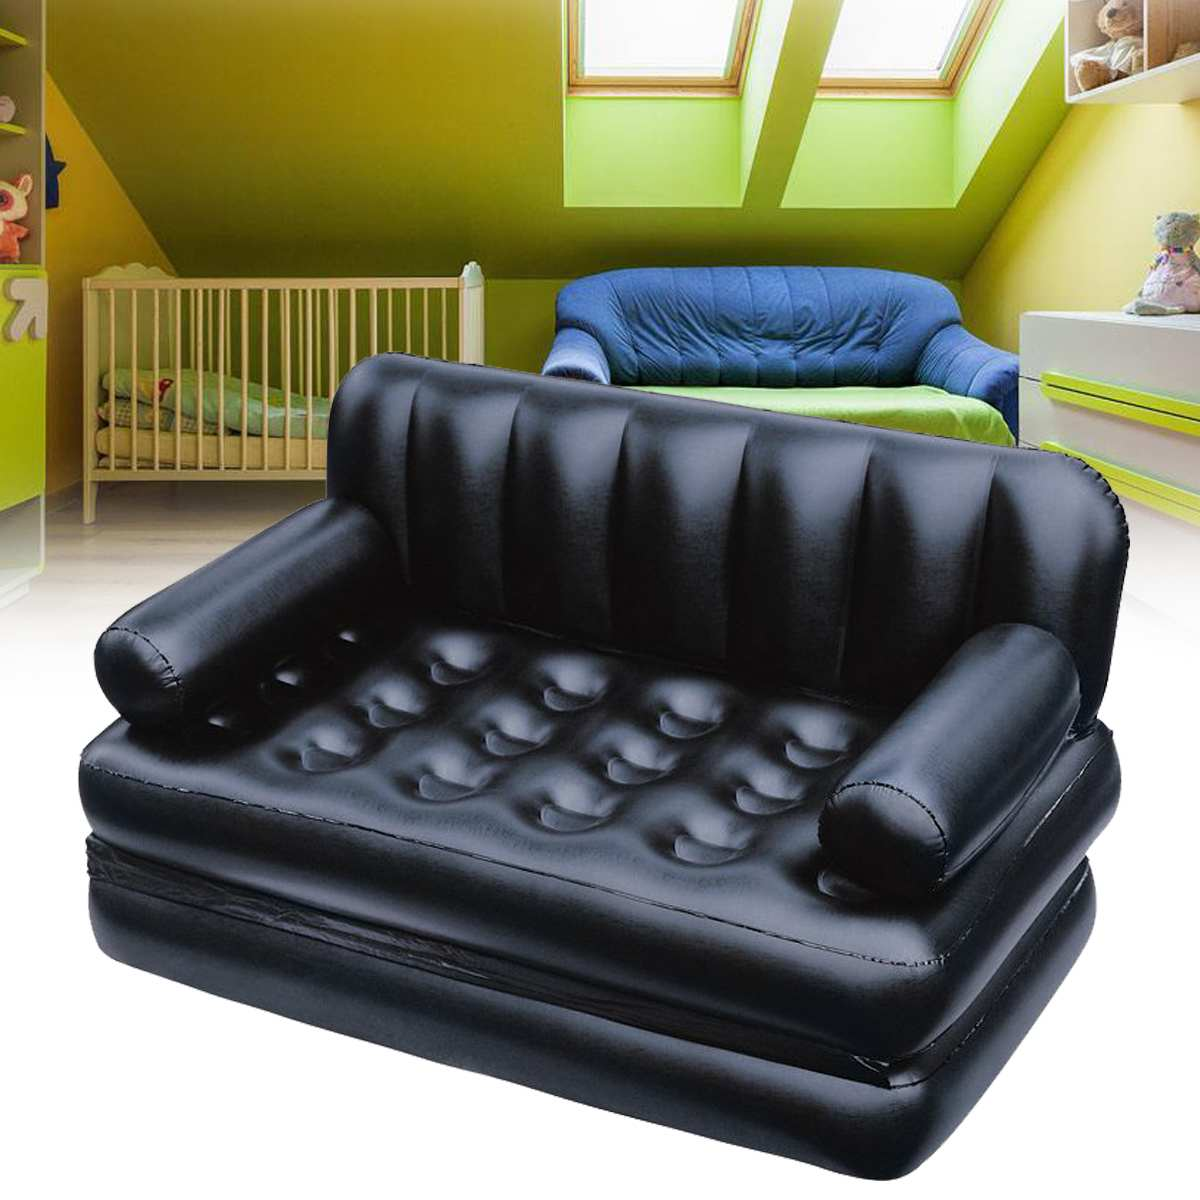 US $66.76 57% OFF|Large Inflatable Garden Sofa Lounge Blow Up Double Air  Bed Multifunction Couch Camping Mattress Airbed Outdoor Furniture Black-in  ...